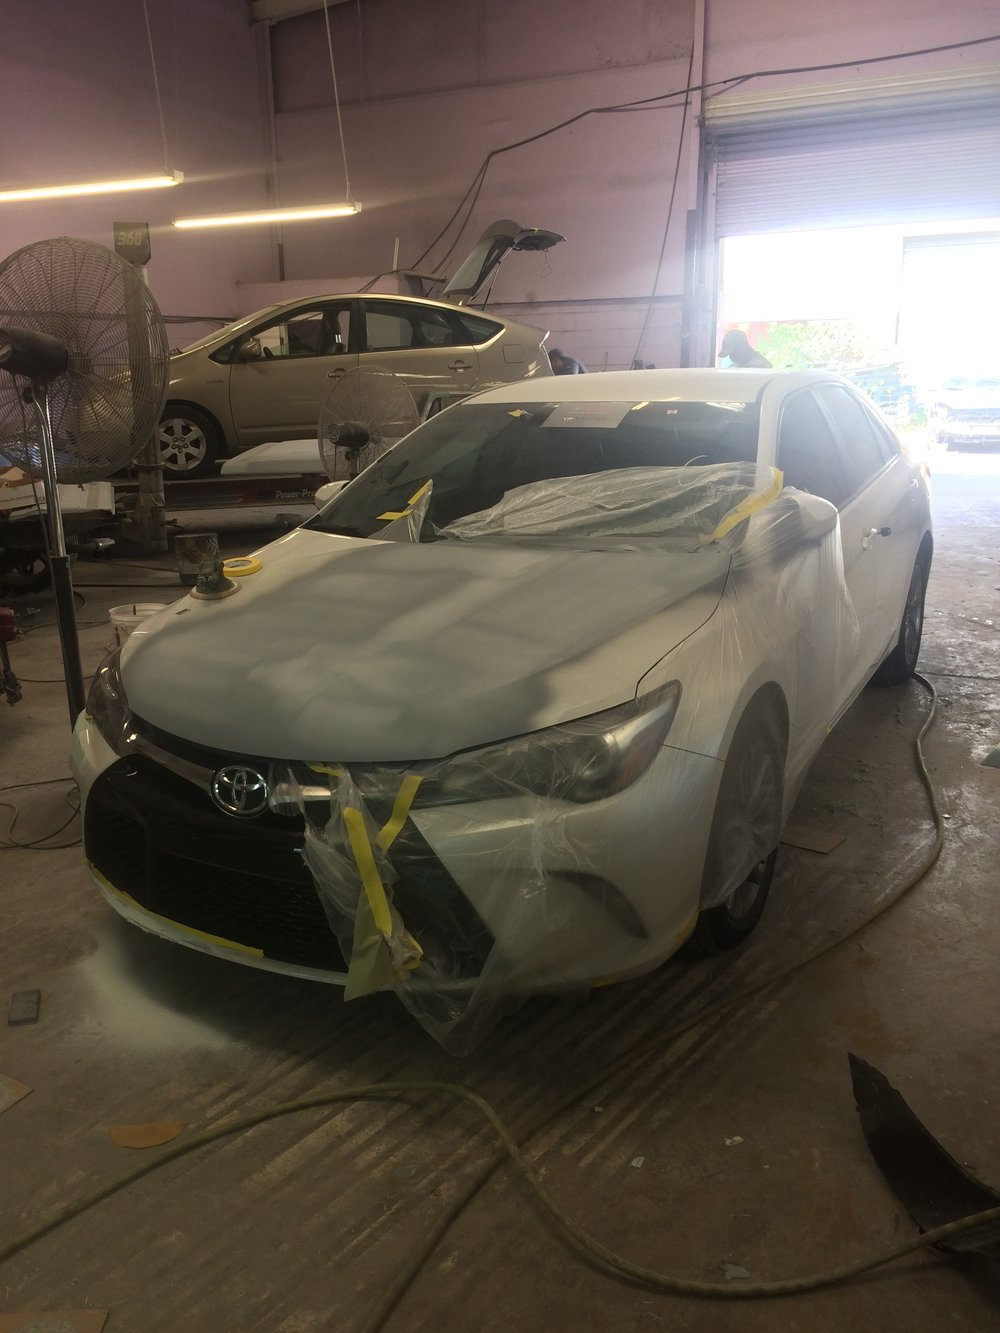 Lawrenceville Toyota Camry Crash